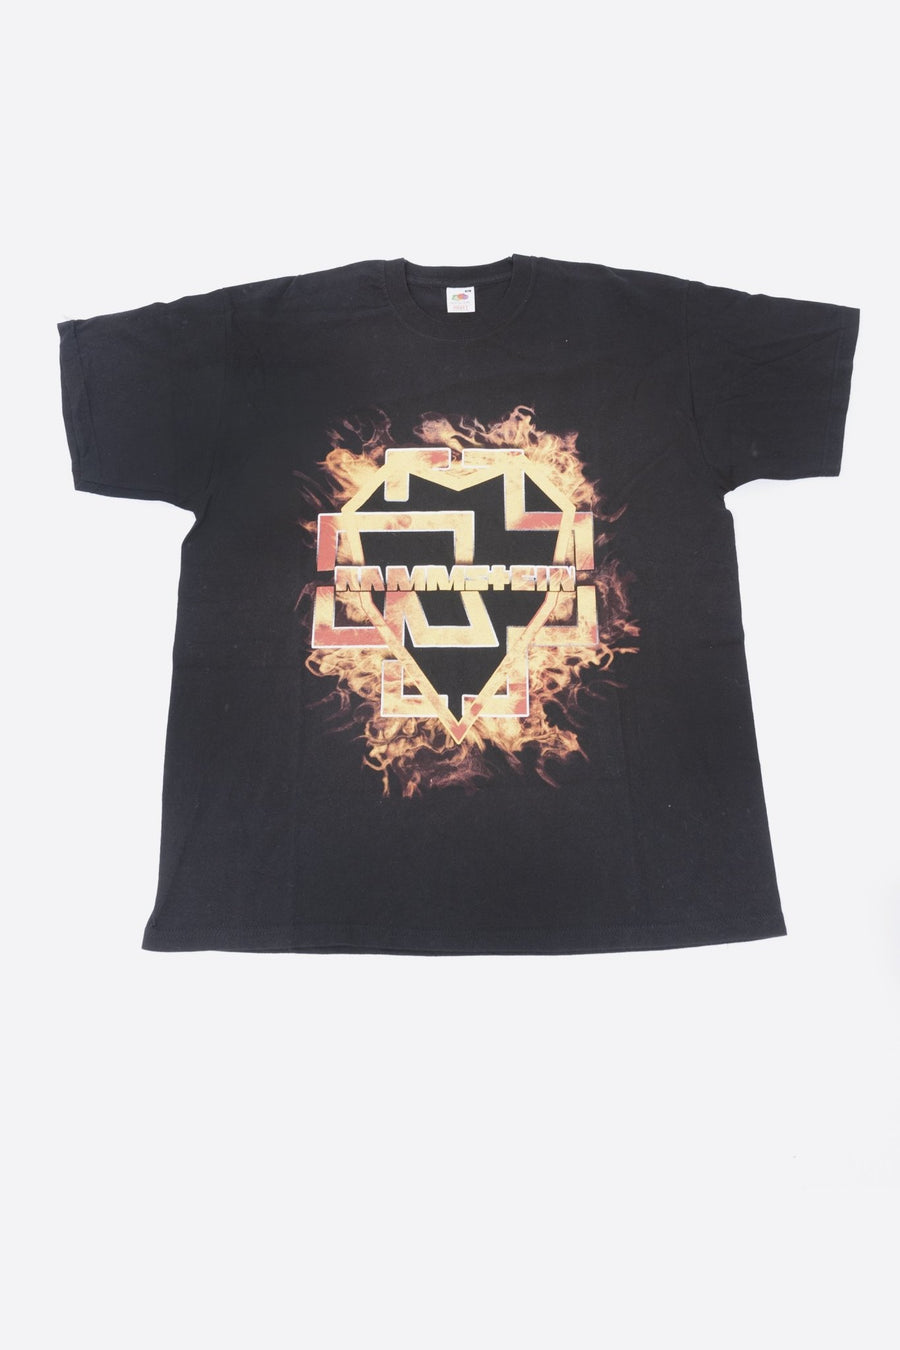 T-shirt Rammstein Fire Front Logo - WASTED PARIS